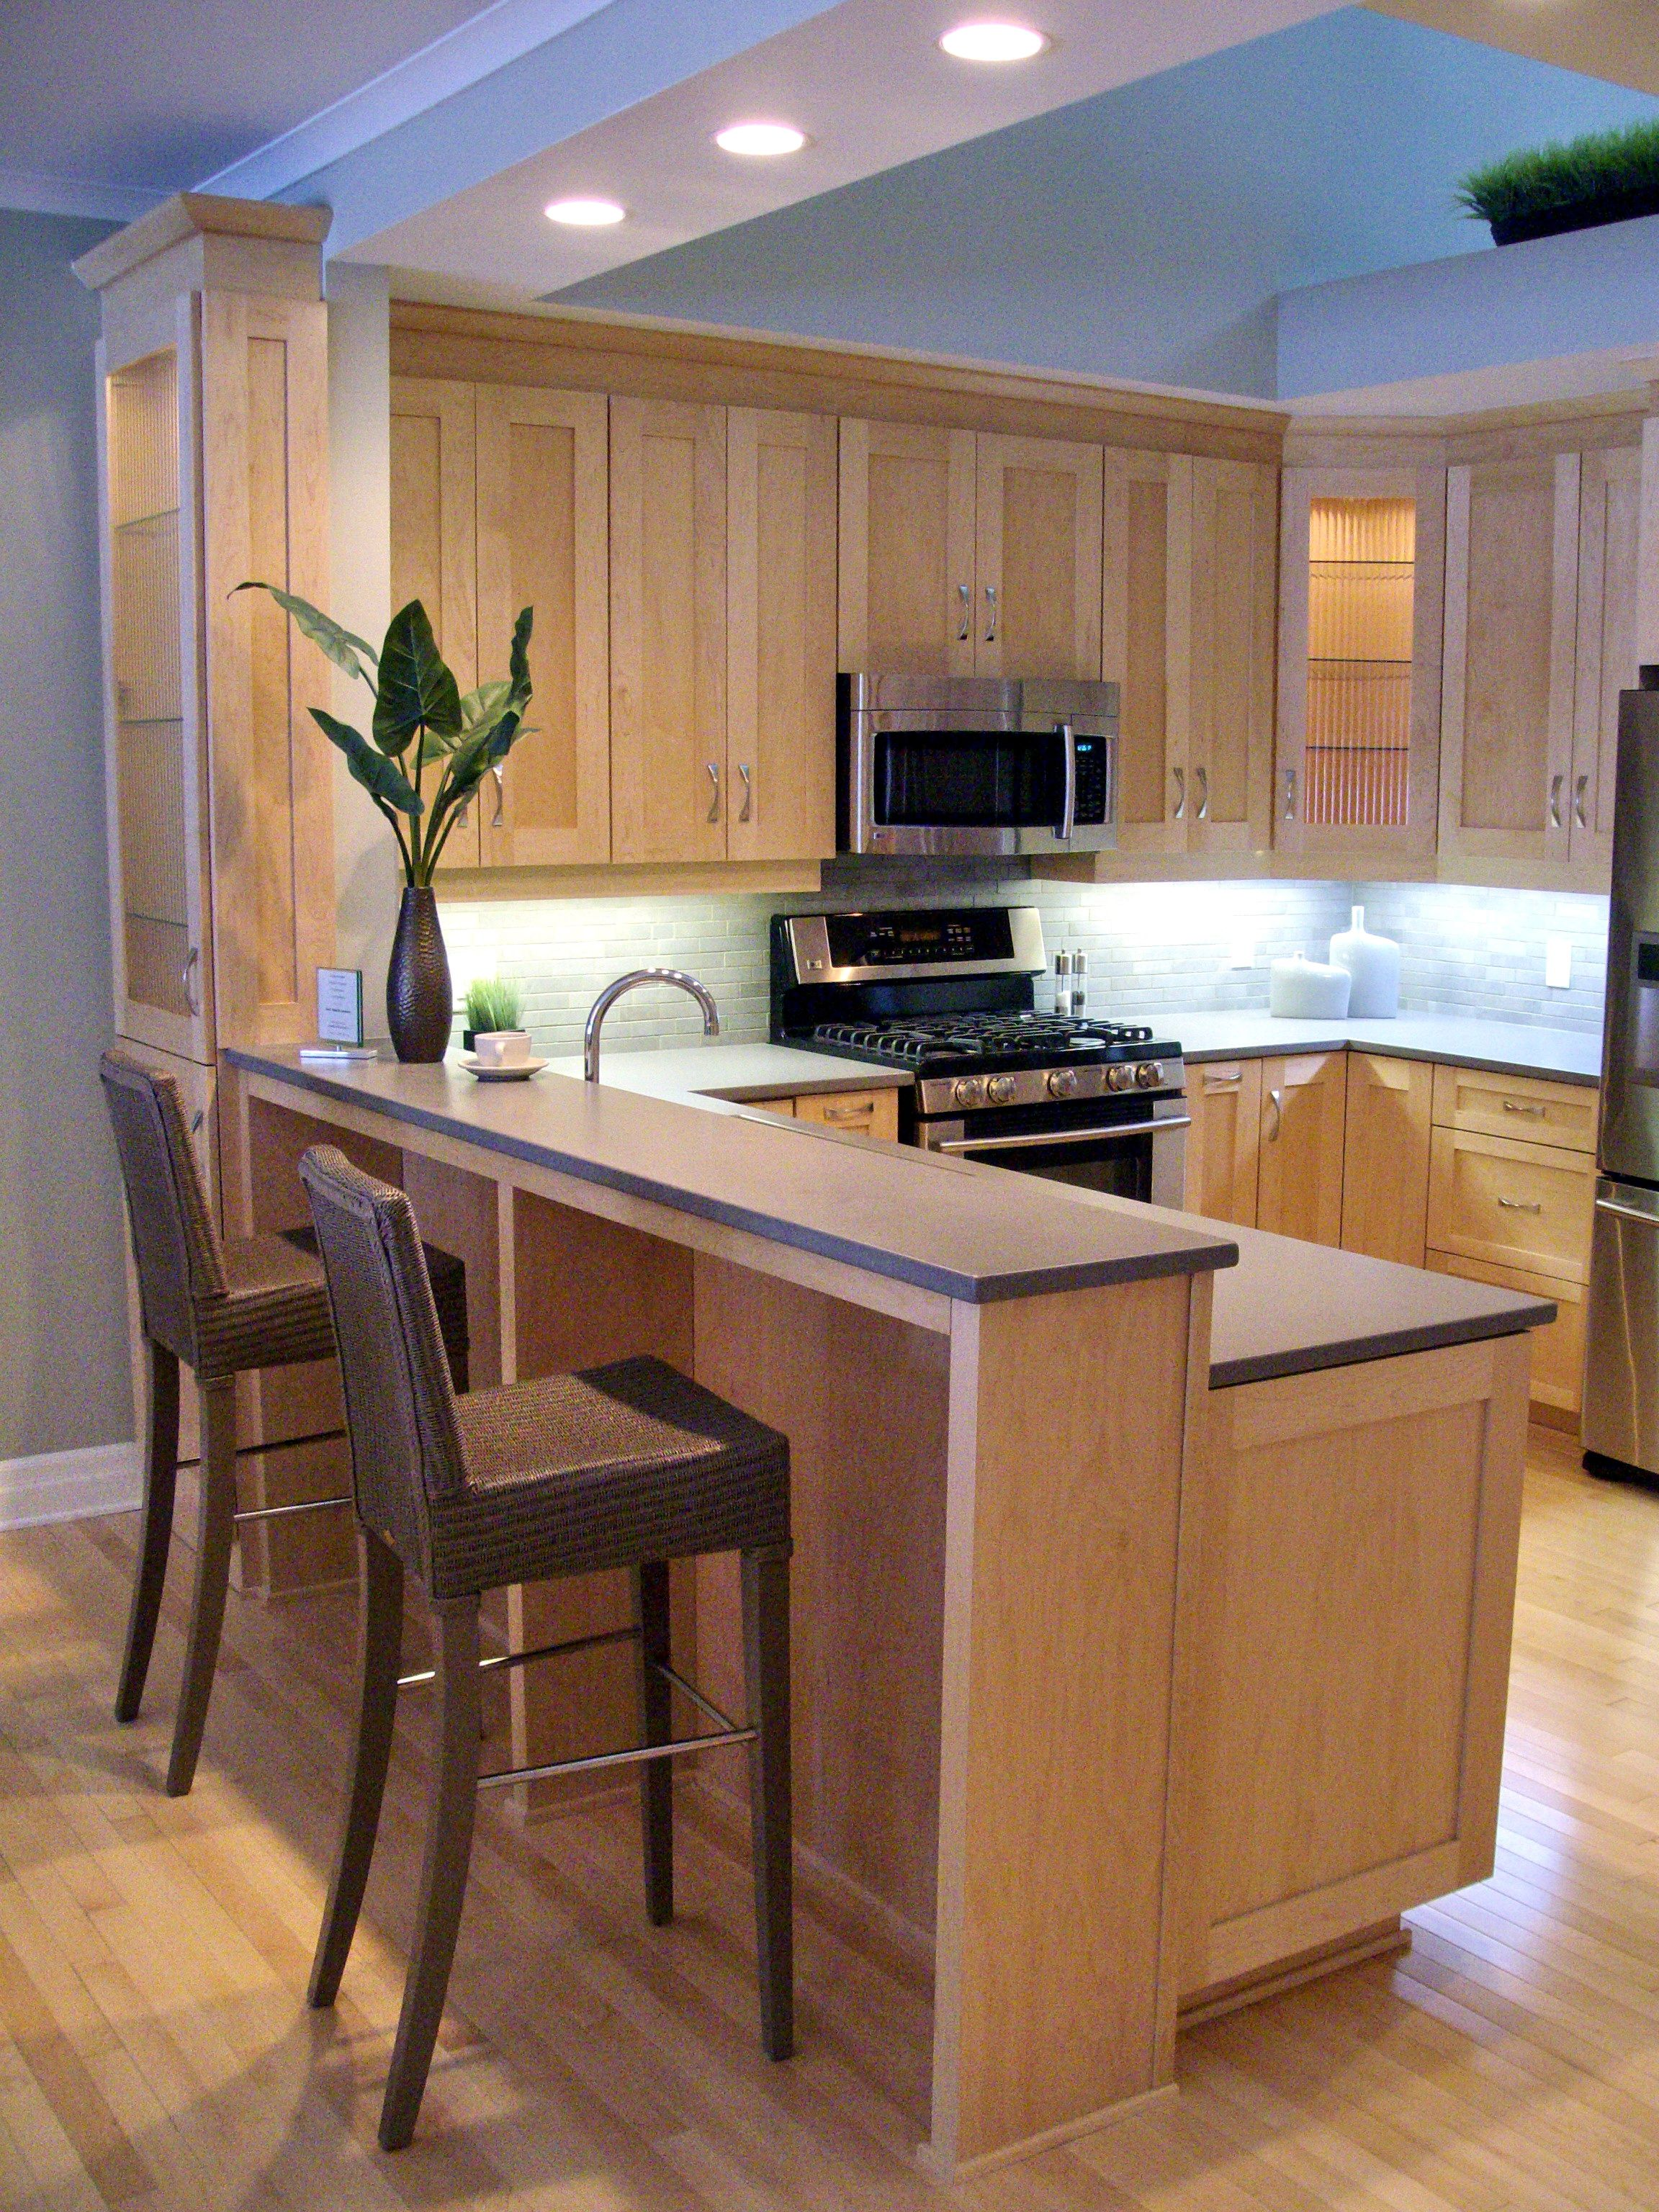 Natural Maple Shaker Cabinets, with Grey Silestone Quartz ... on What Color Countertops Go With Maple Cabinets  id=52674